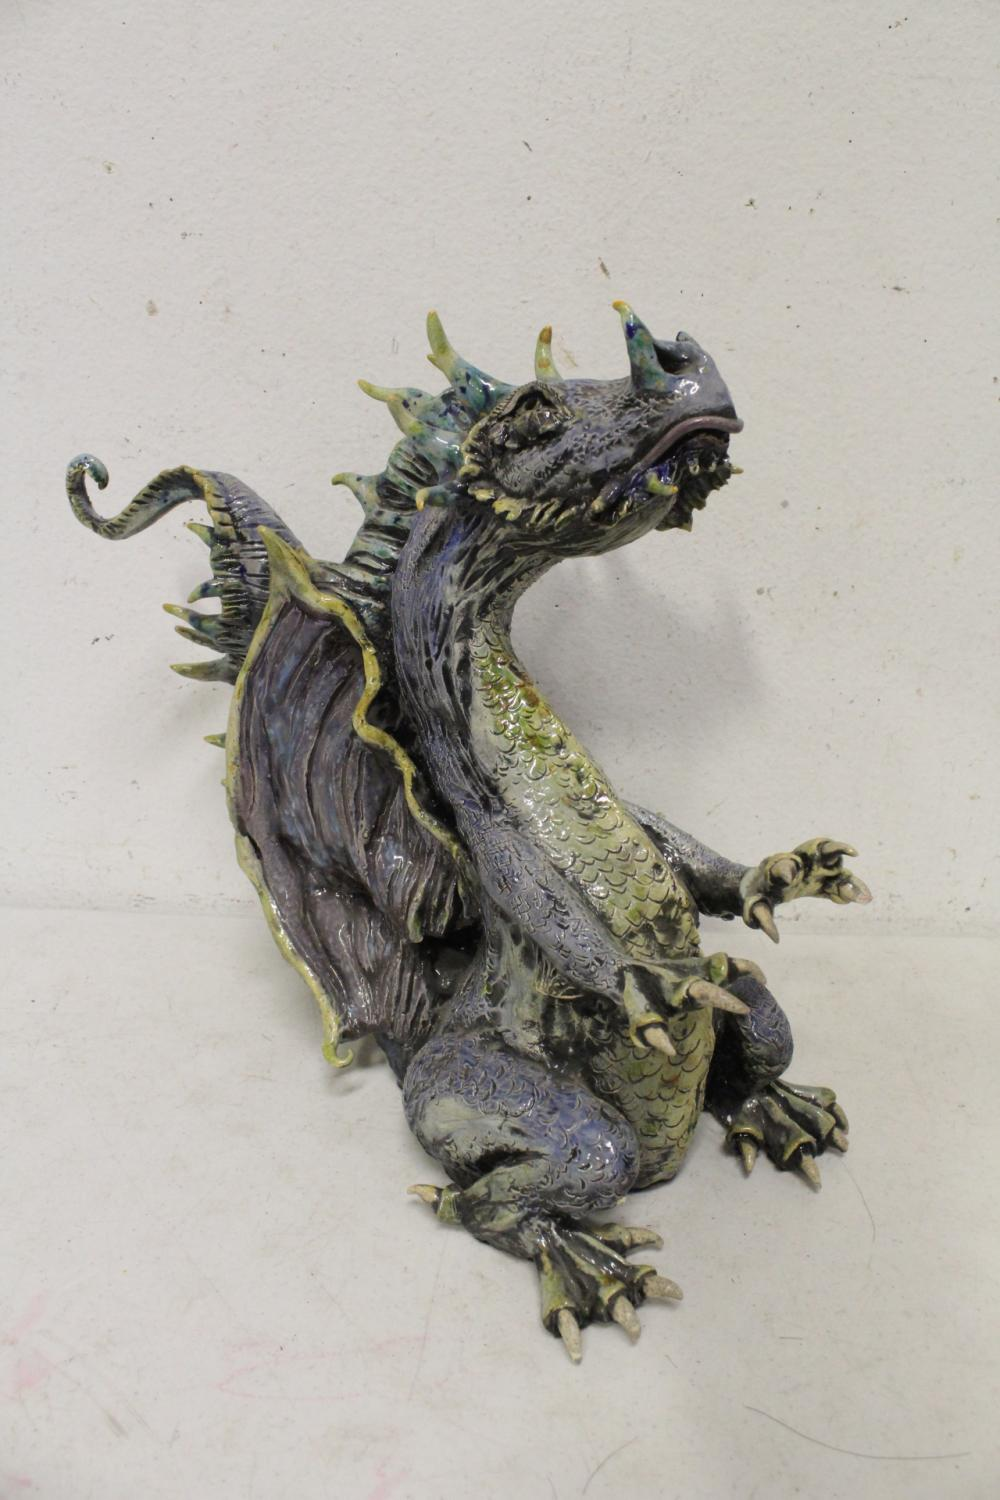 Large pottery sculpture of dragon